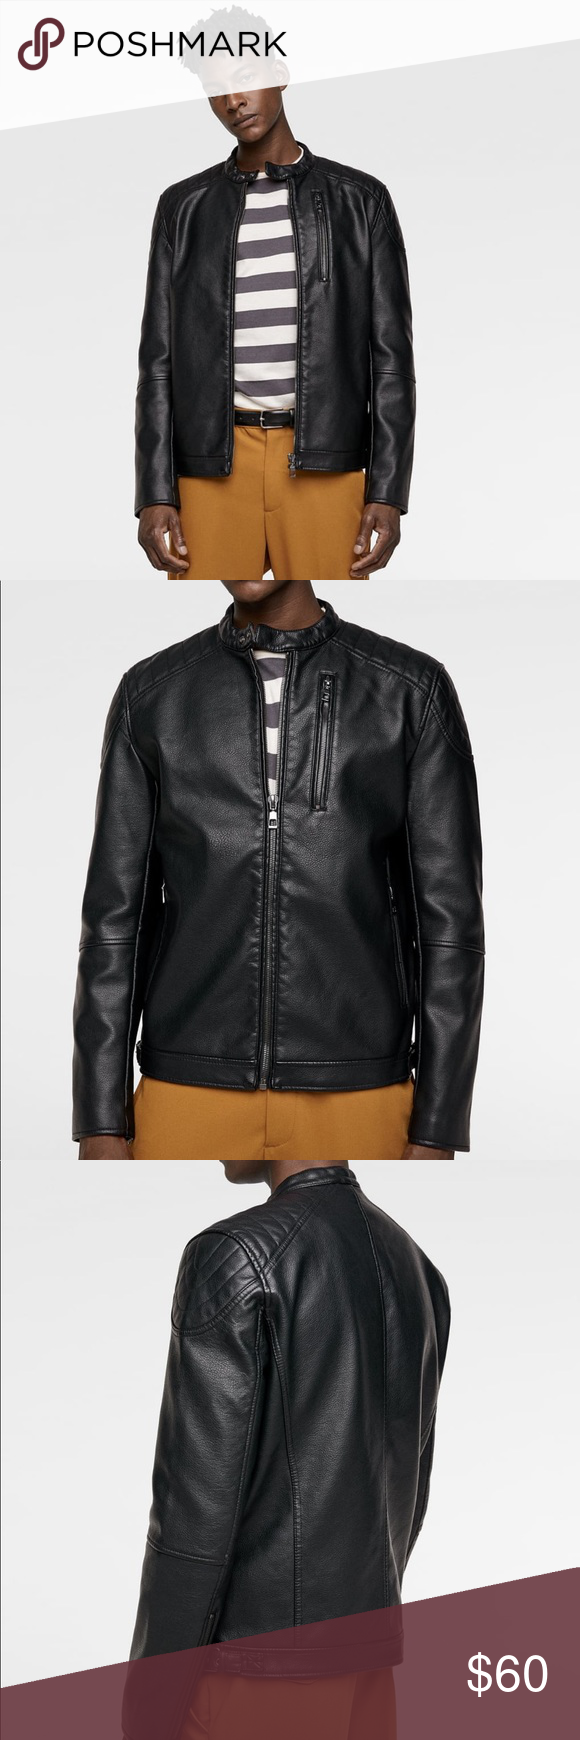 Leather Jacket Quilted Shoulders Faux Leather Jacket With Round Neck With Snap Button Closure Long Sleeves With Qu Leather Jacket Jackets Faux Leather Jackets [ 1740 x 580 Pixel ]